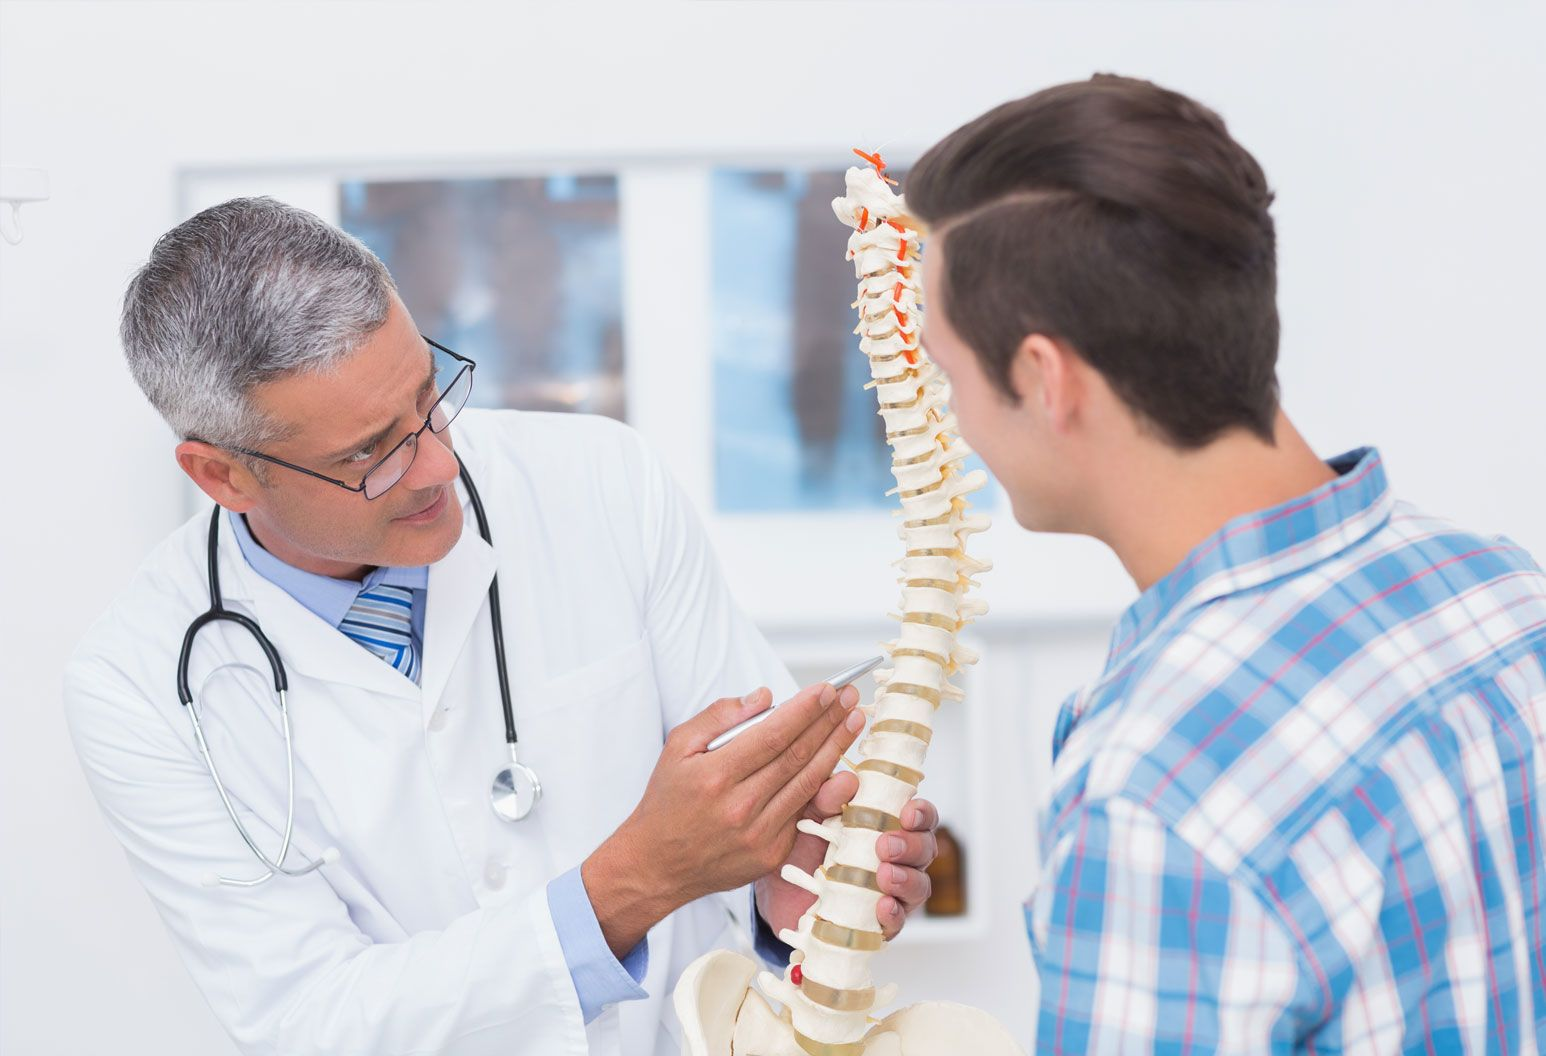 A doctor wearing glasses and a white lab coat holds a model of the spine and points to it, explaining something to a patient. The male patient listens and smiles. He is wearing a blue flannel shirt. There are x-rays blurred in the background.